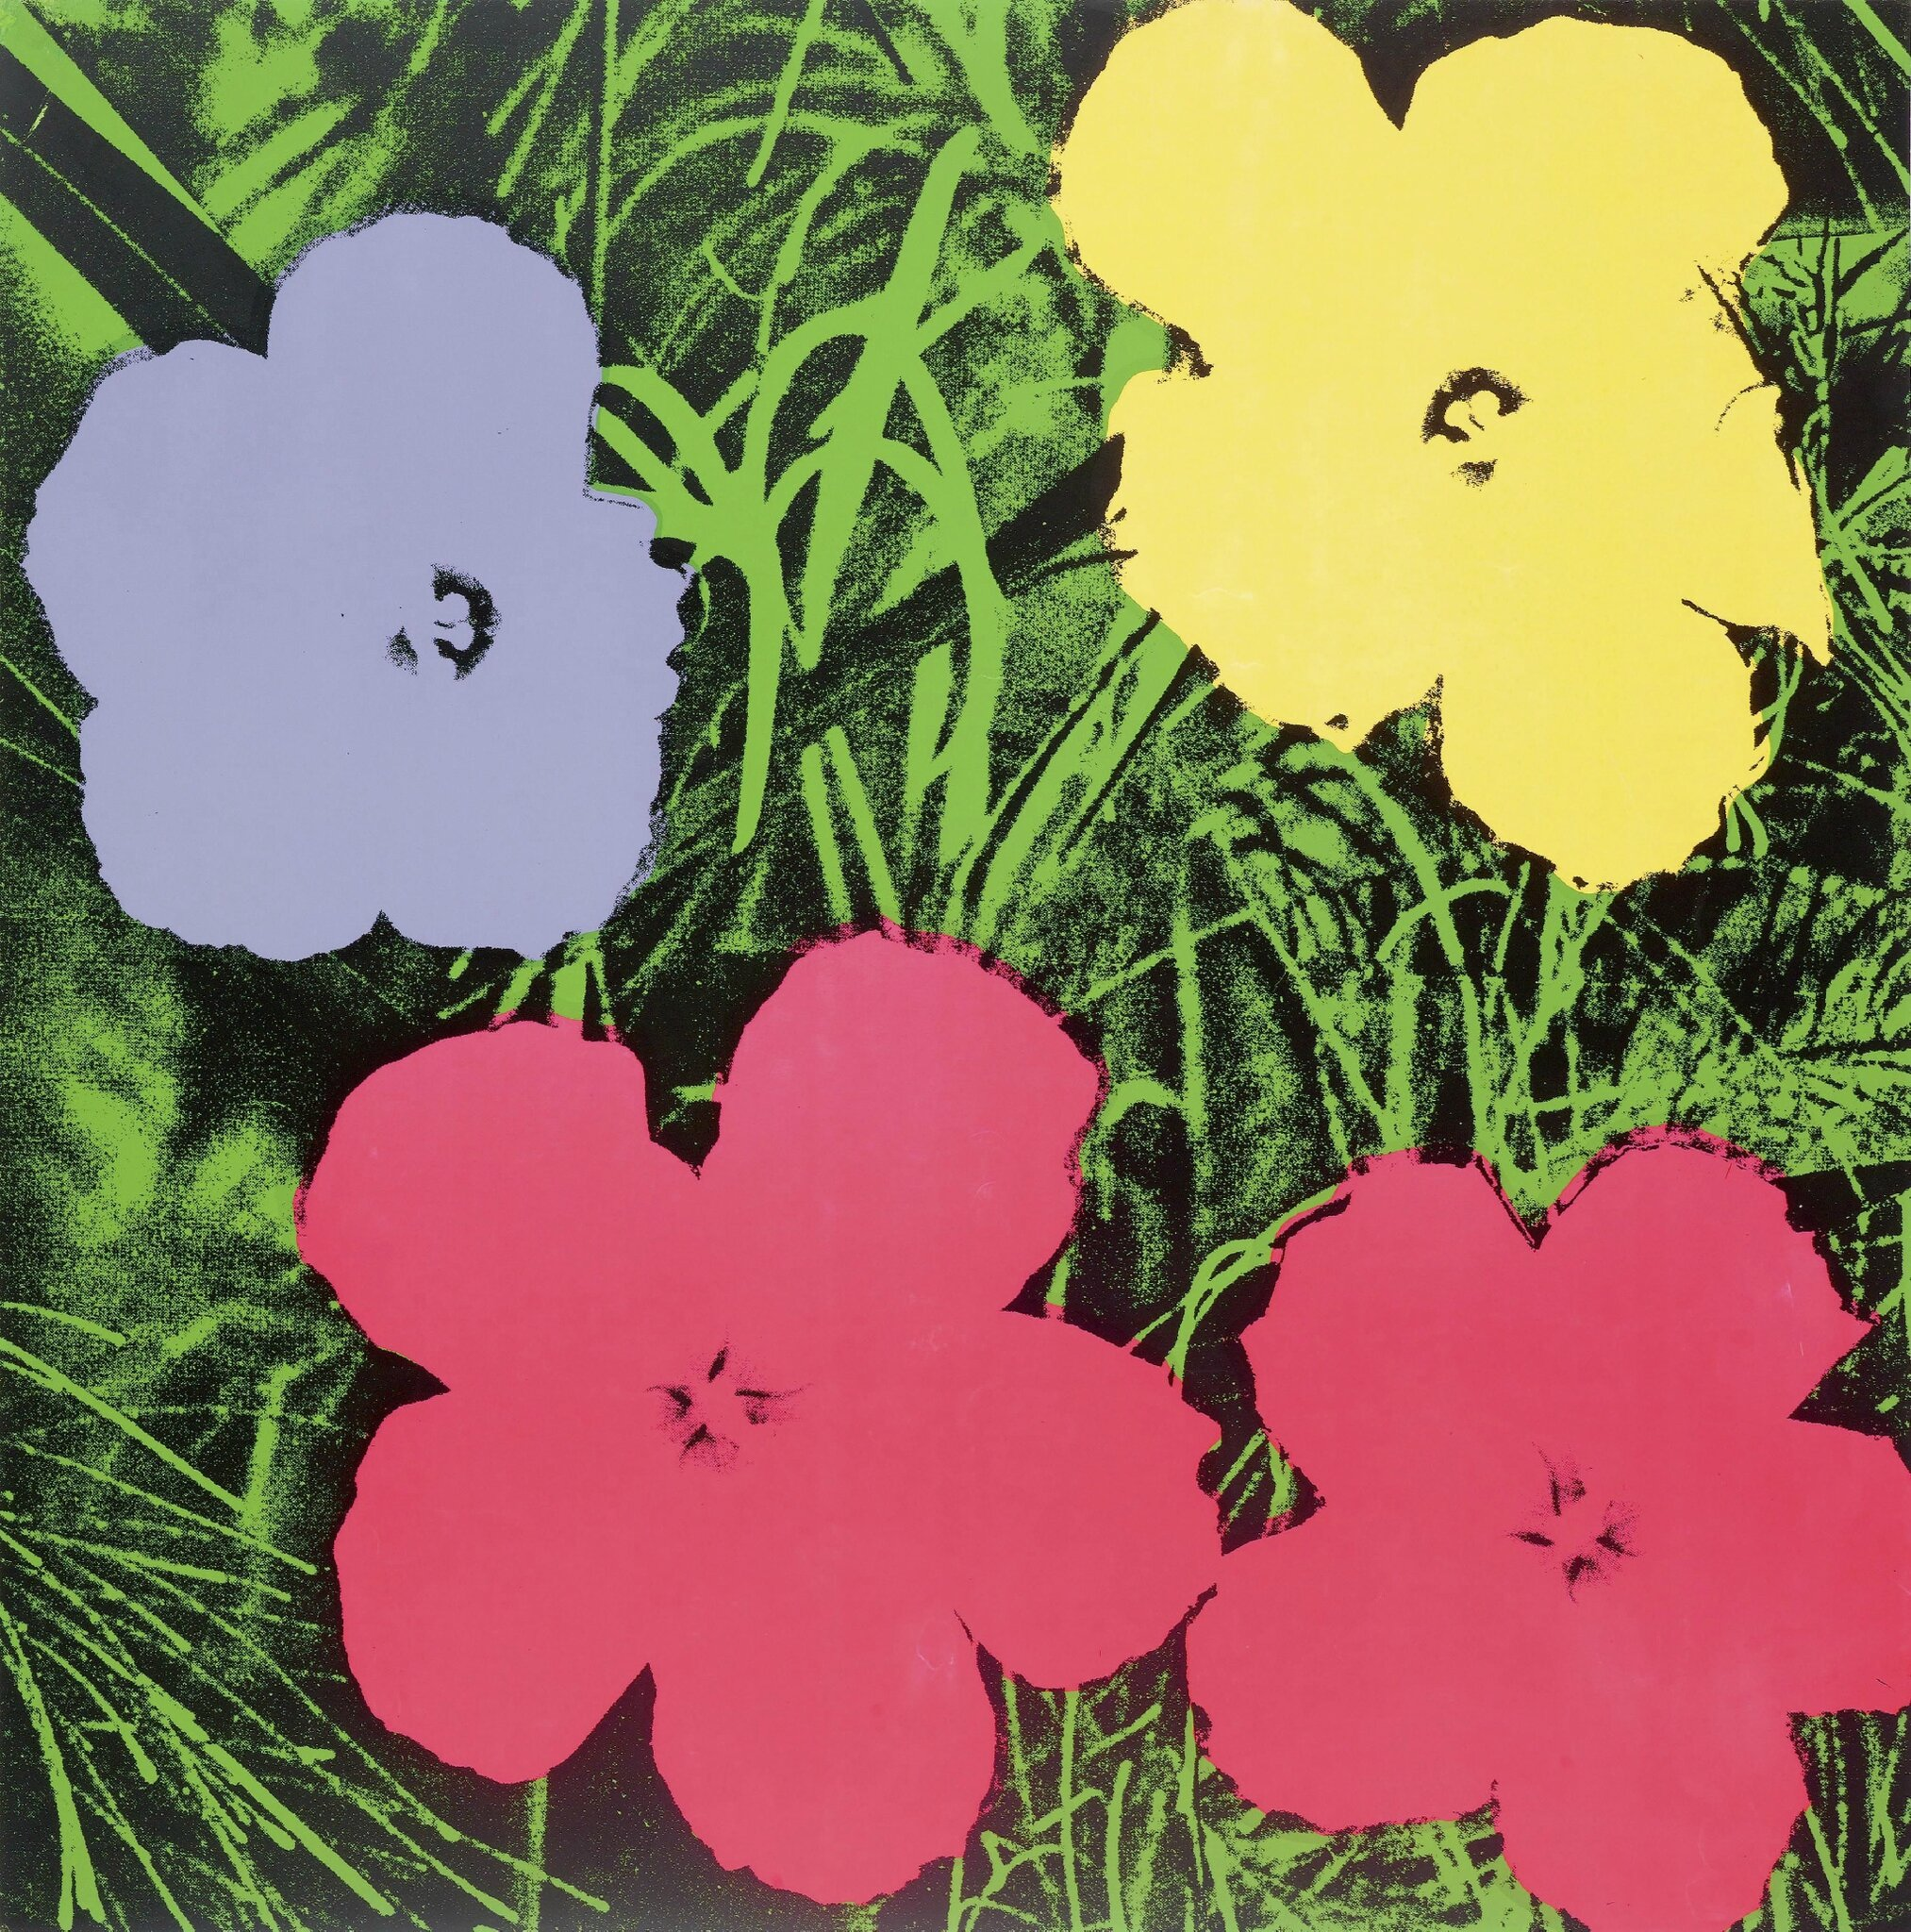 The Best Of Art Luxury Markets Offered At Koller Alainrtruong Andy Warhol Dance Diagram 1961 Pittsburgh 1928 1987 New York Flowers 1970 Colour Screenprint 157 250 Signed On Reverse Also With Stamped Number